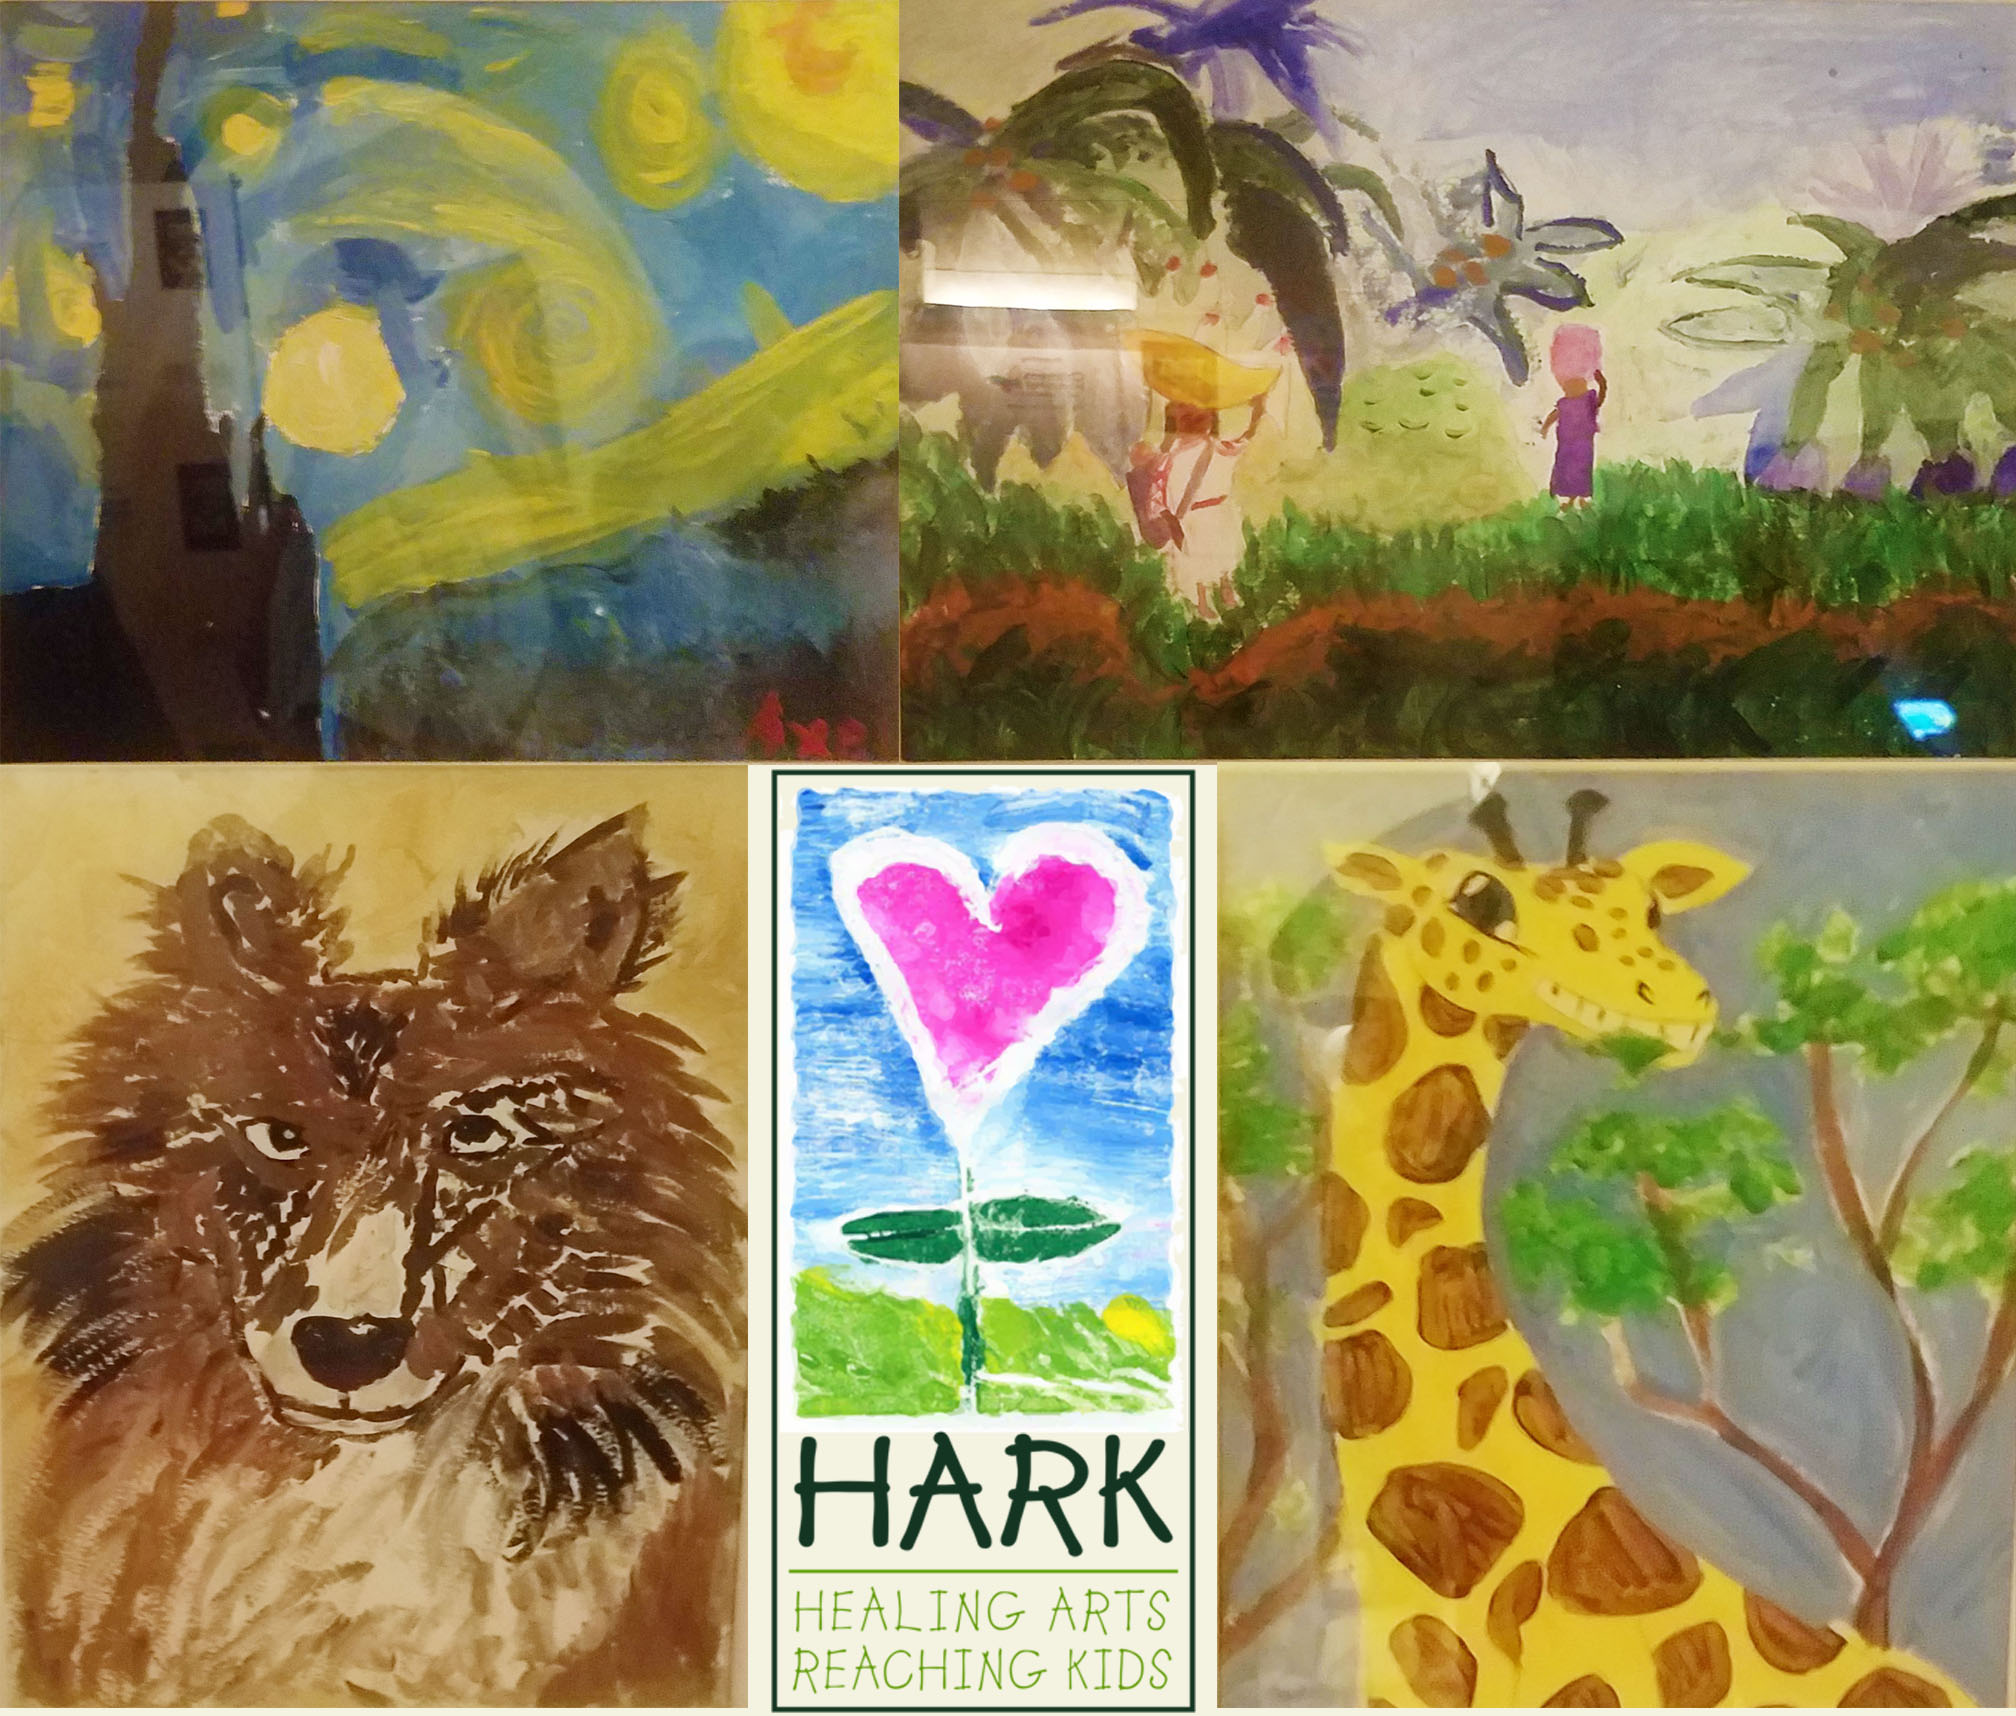 Some of the Childrens artwork that was auctioned off during the event.